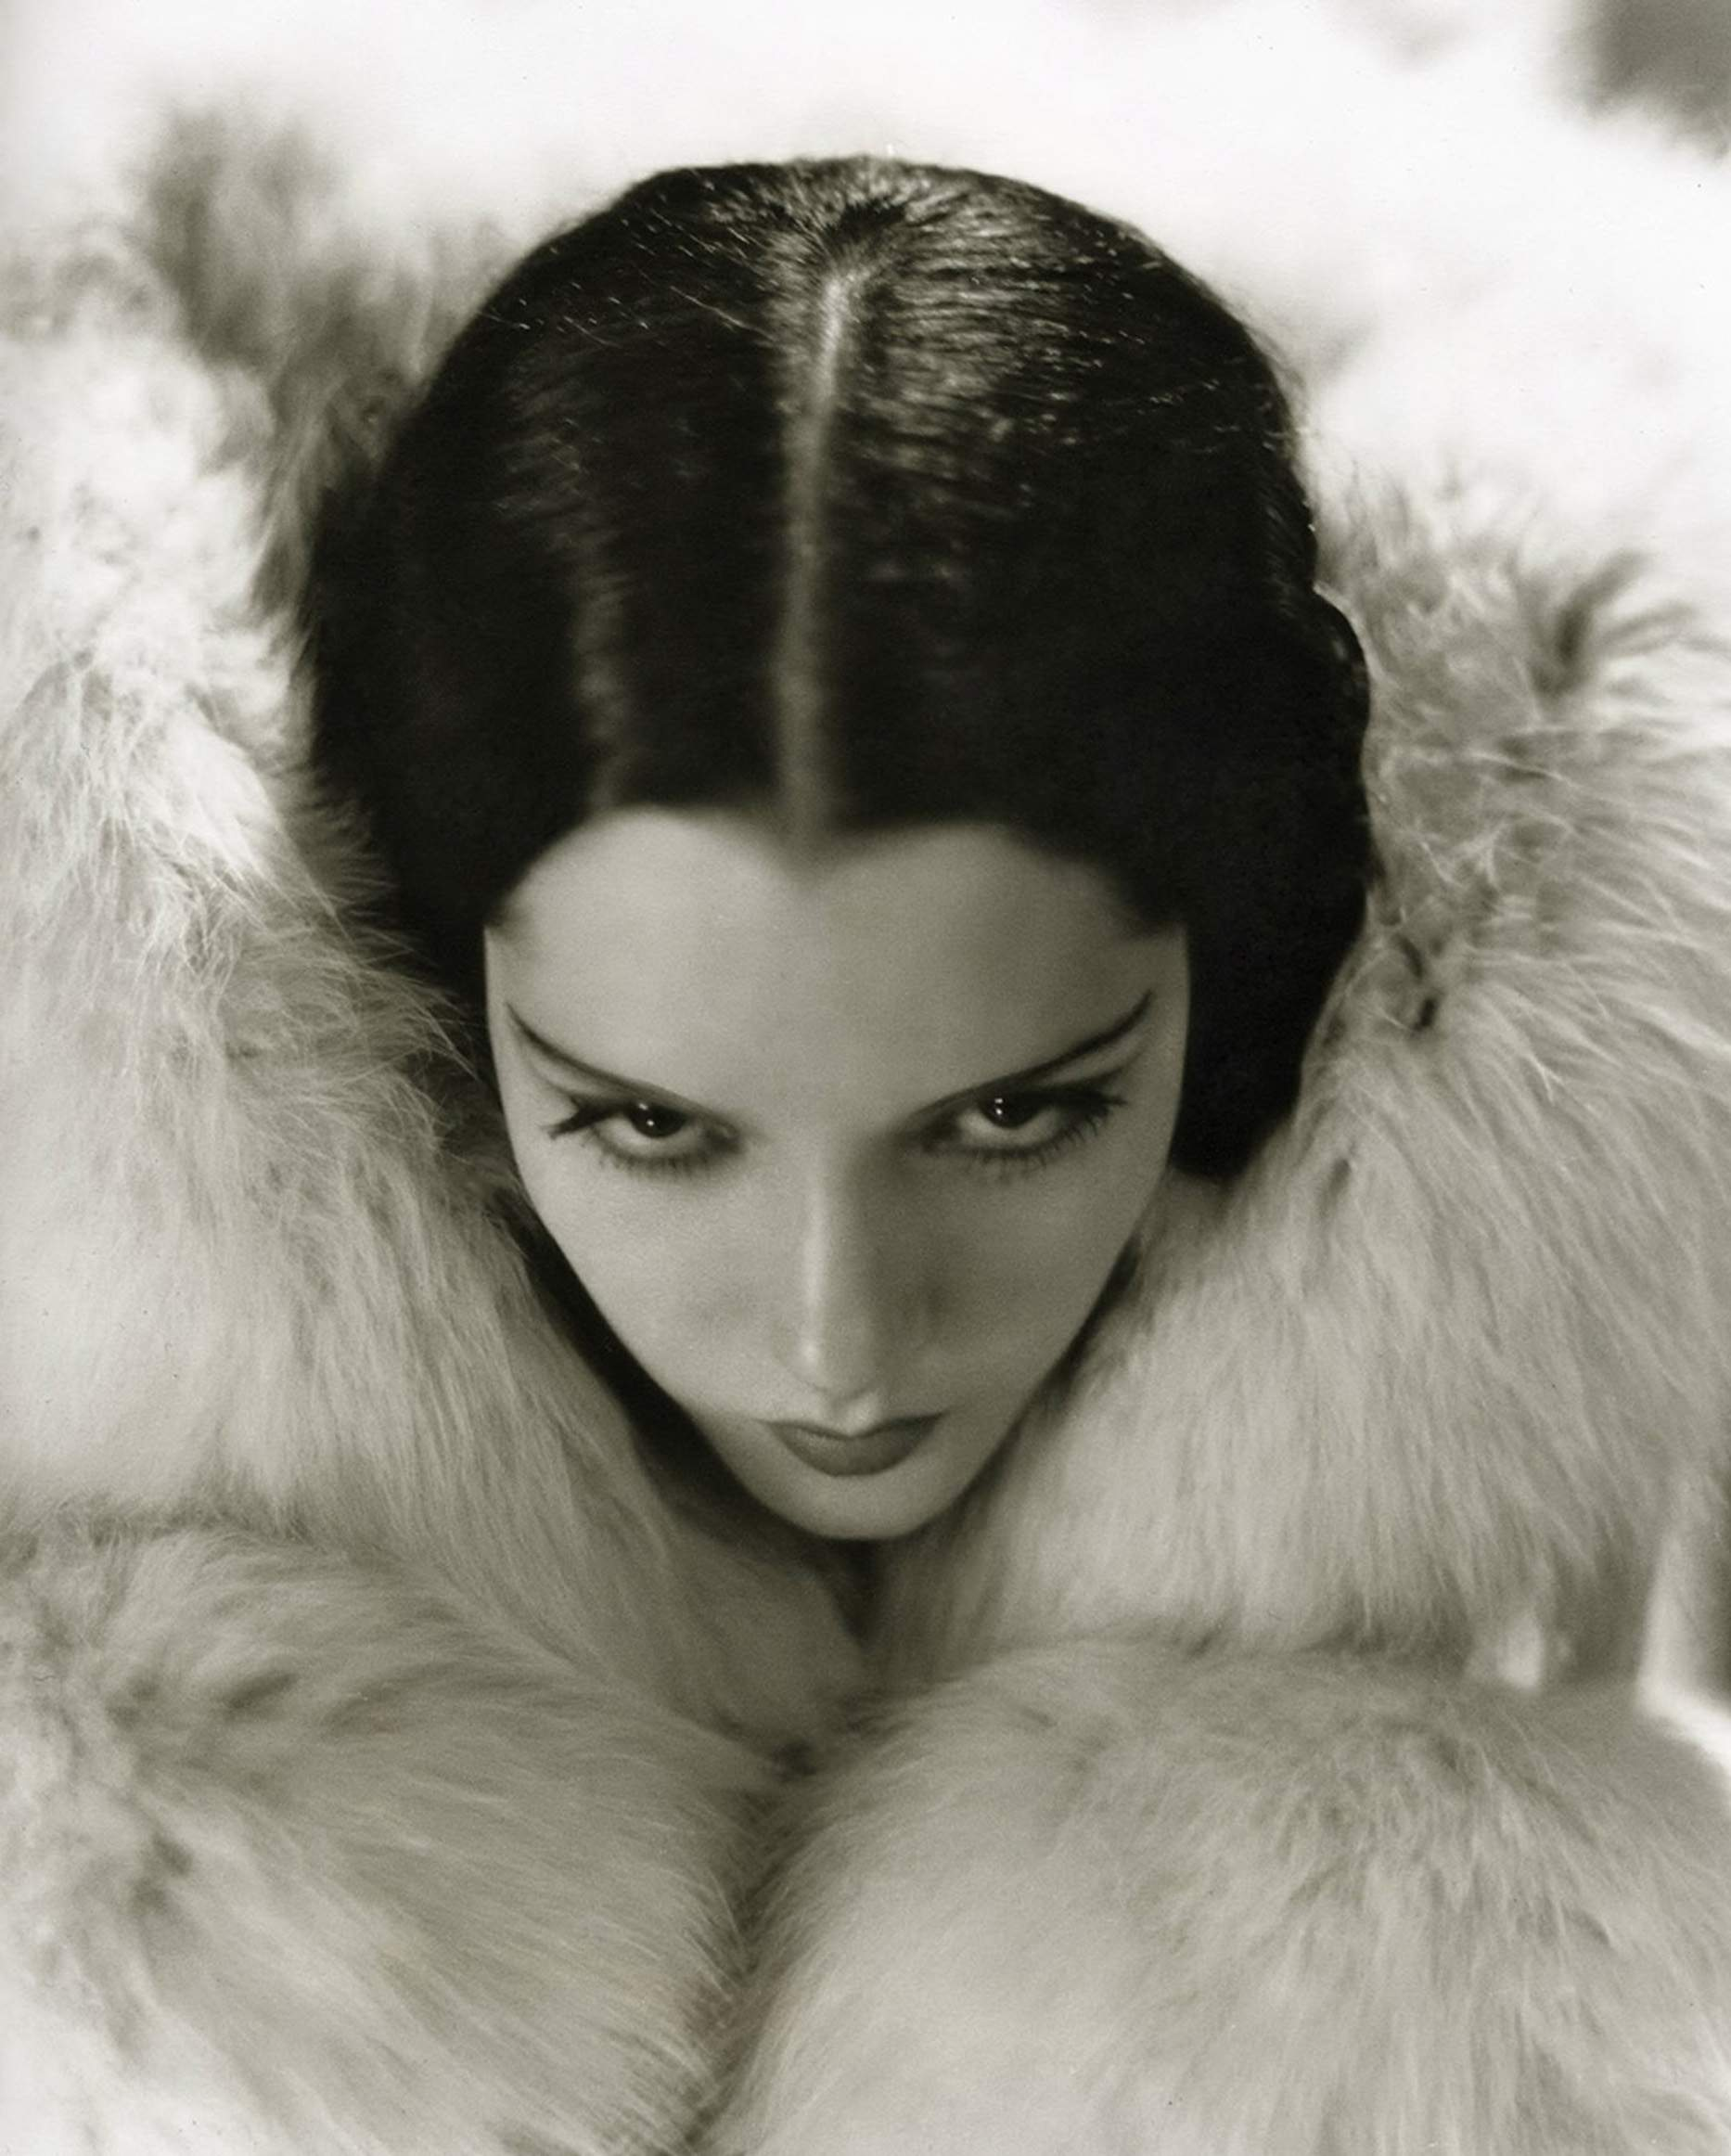 lupe velez imdblupe velez simpsons, lupe velez films, lupe velez movies, lupe velez, lupe velez imdb, lupe velez gary cooper, lupe velez funeral, lupe velez cause of death, lupe velez frasier, lupe velez house, lupe velez y gary cooper, lupe velez muerte, lupe velez youtube, lupe velez death photo, lupe velez quotes, lupe velez biography, lupe velez fotos, lupe velez muerta, lupe velez imagenes, lupe velez pelicula